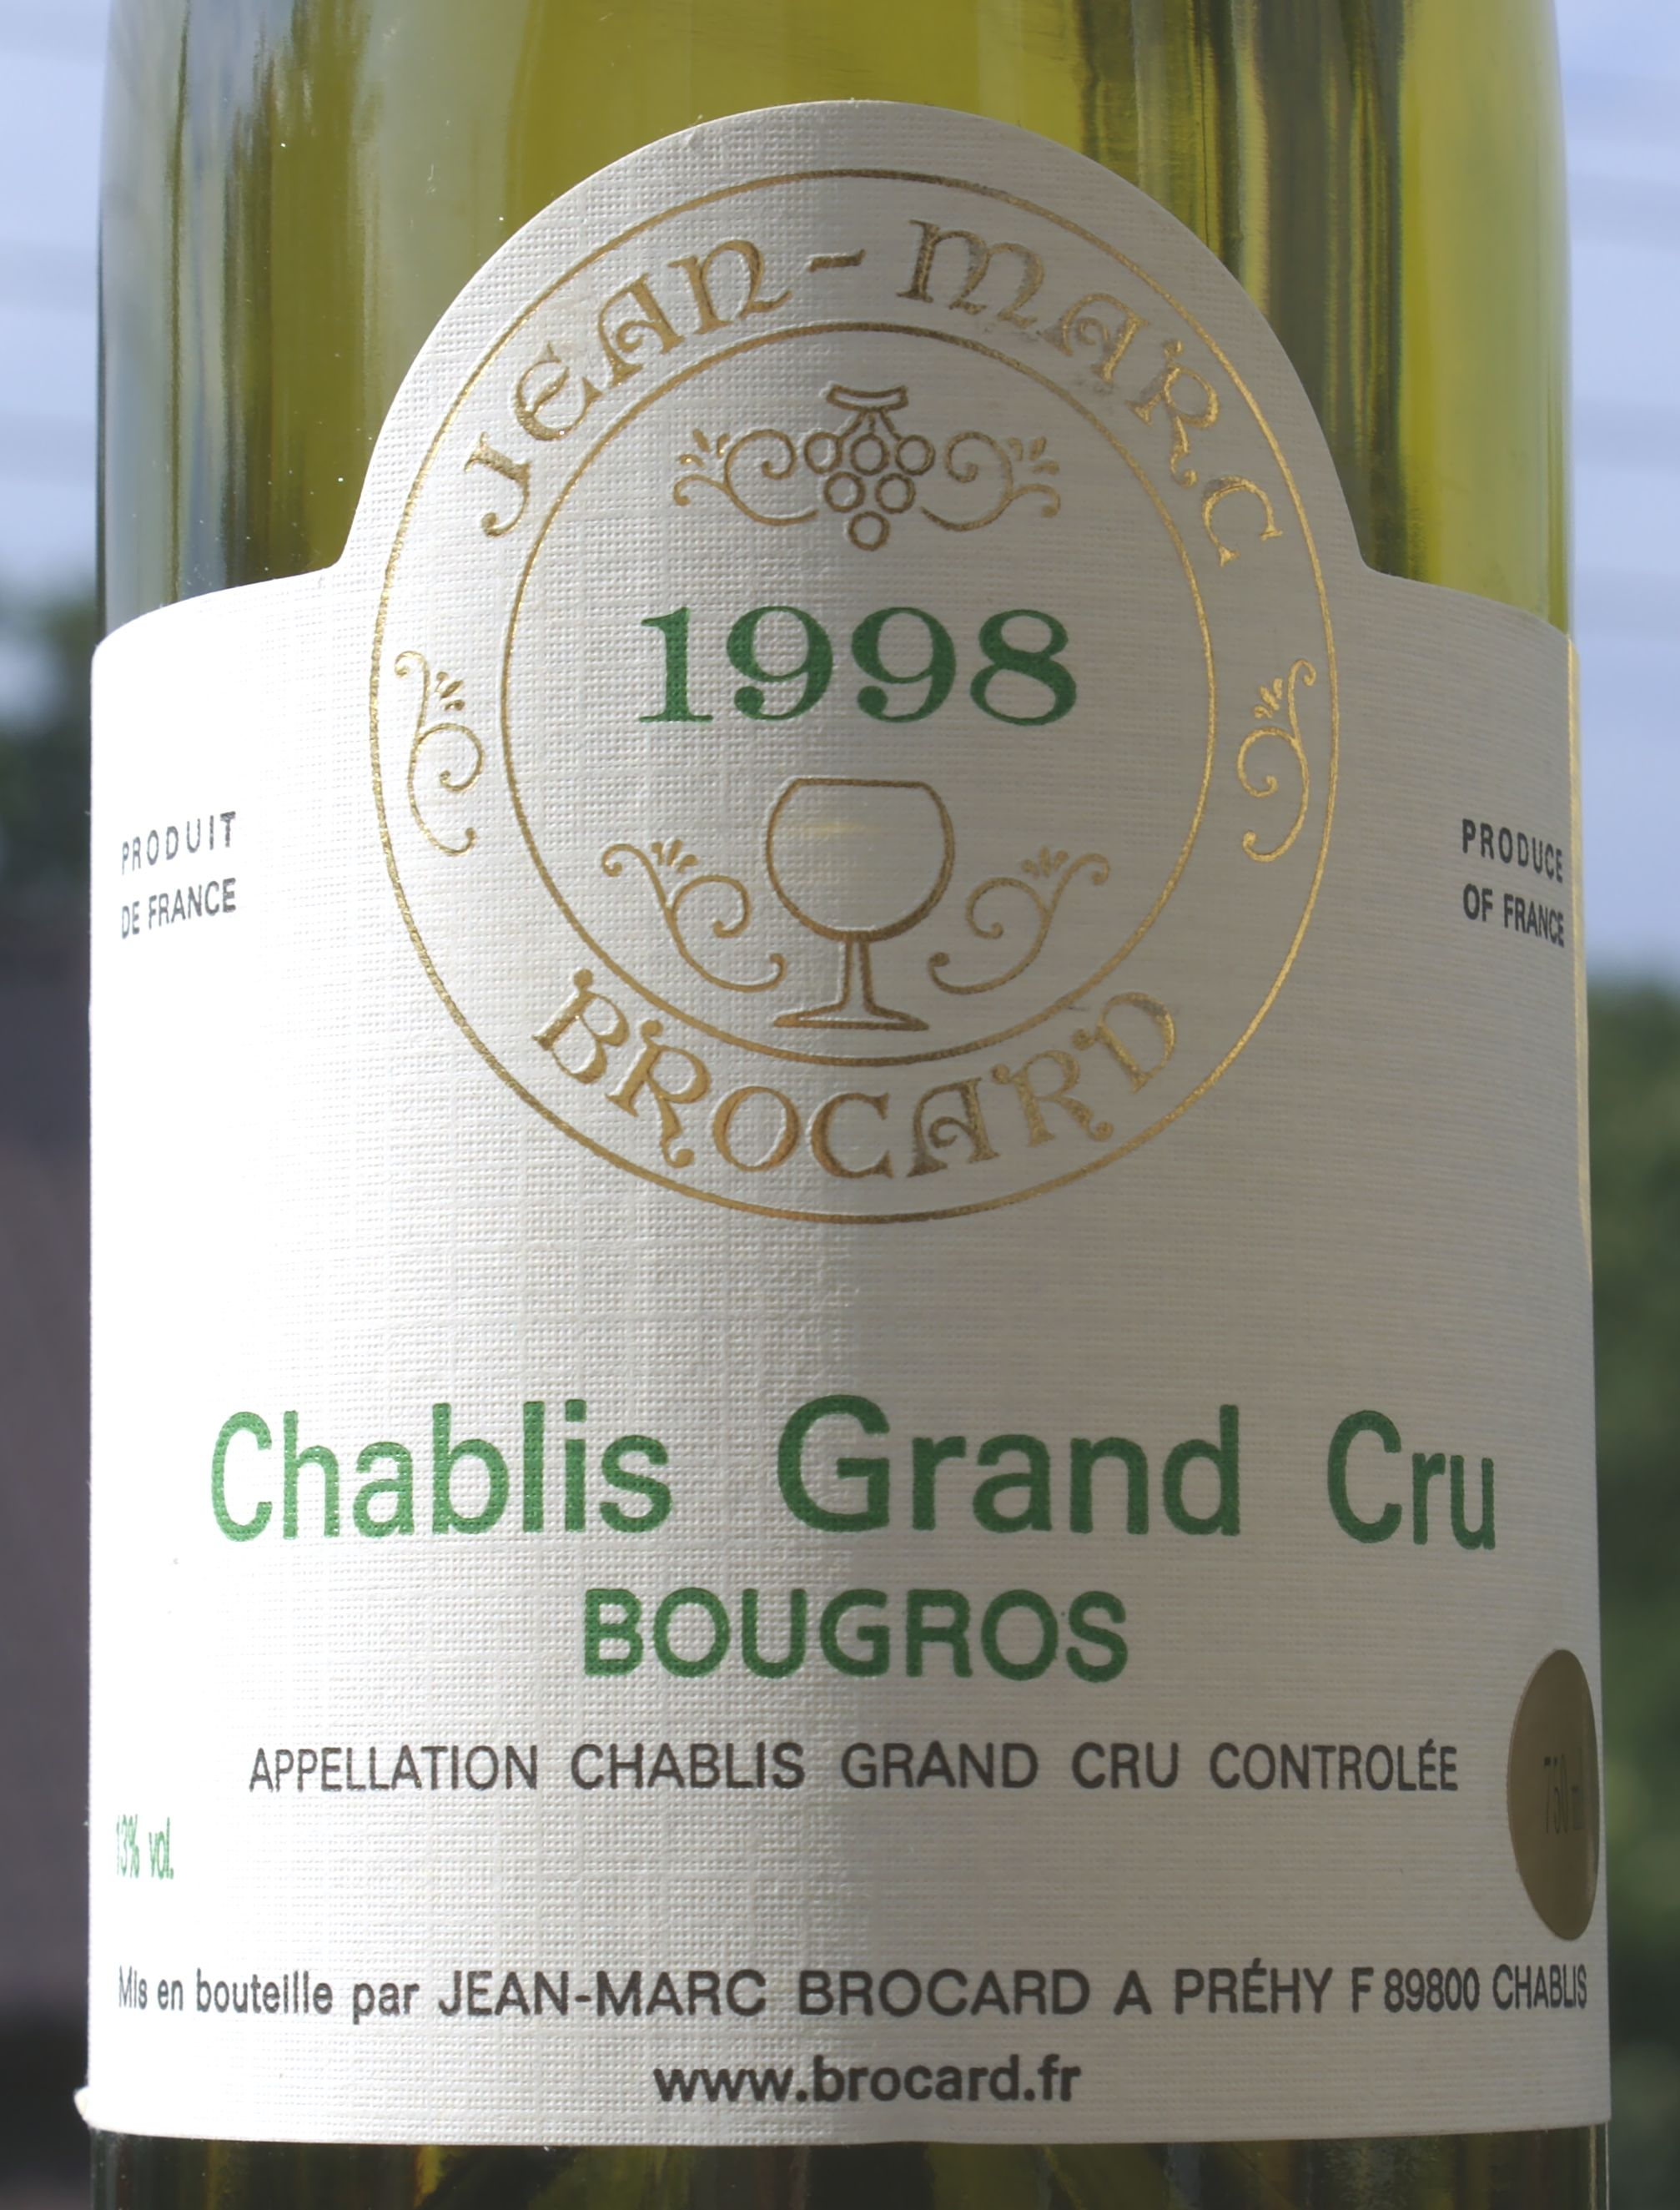 Jean-Marc Brocard Chablis Bougros 1998